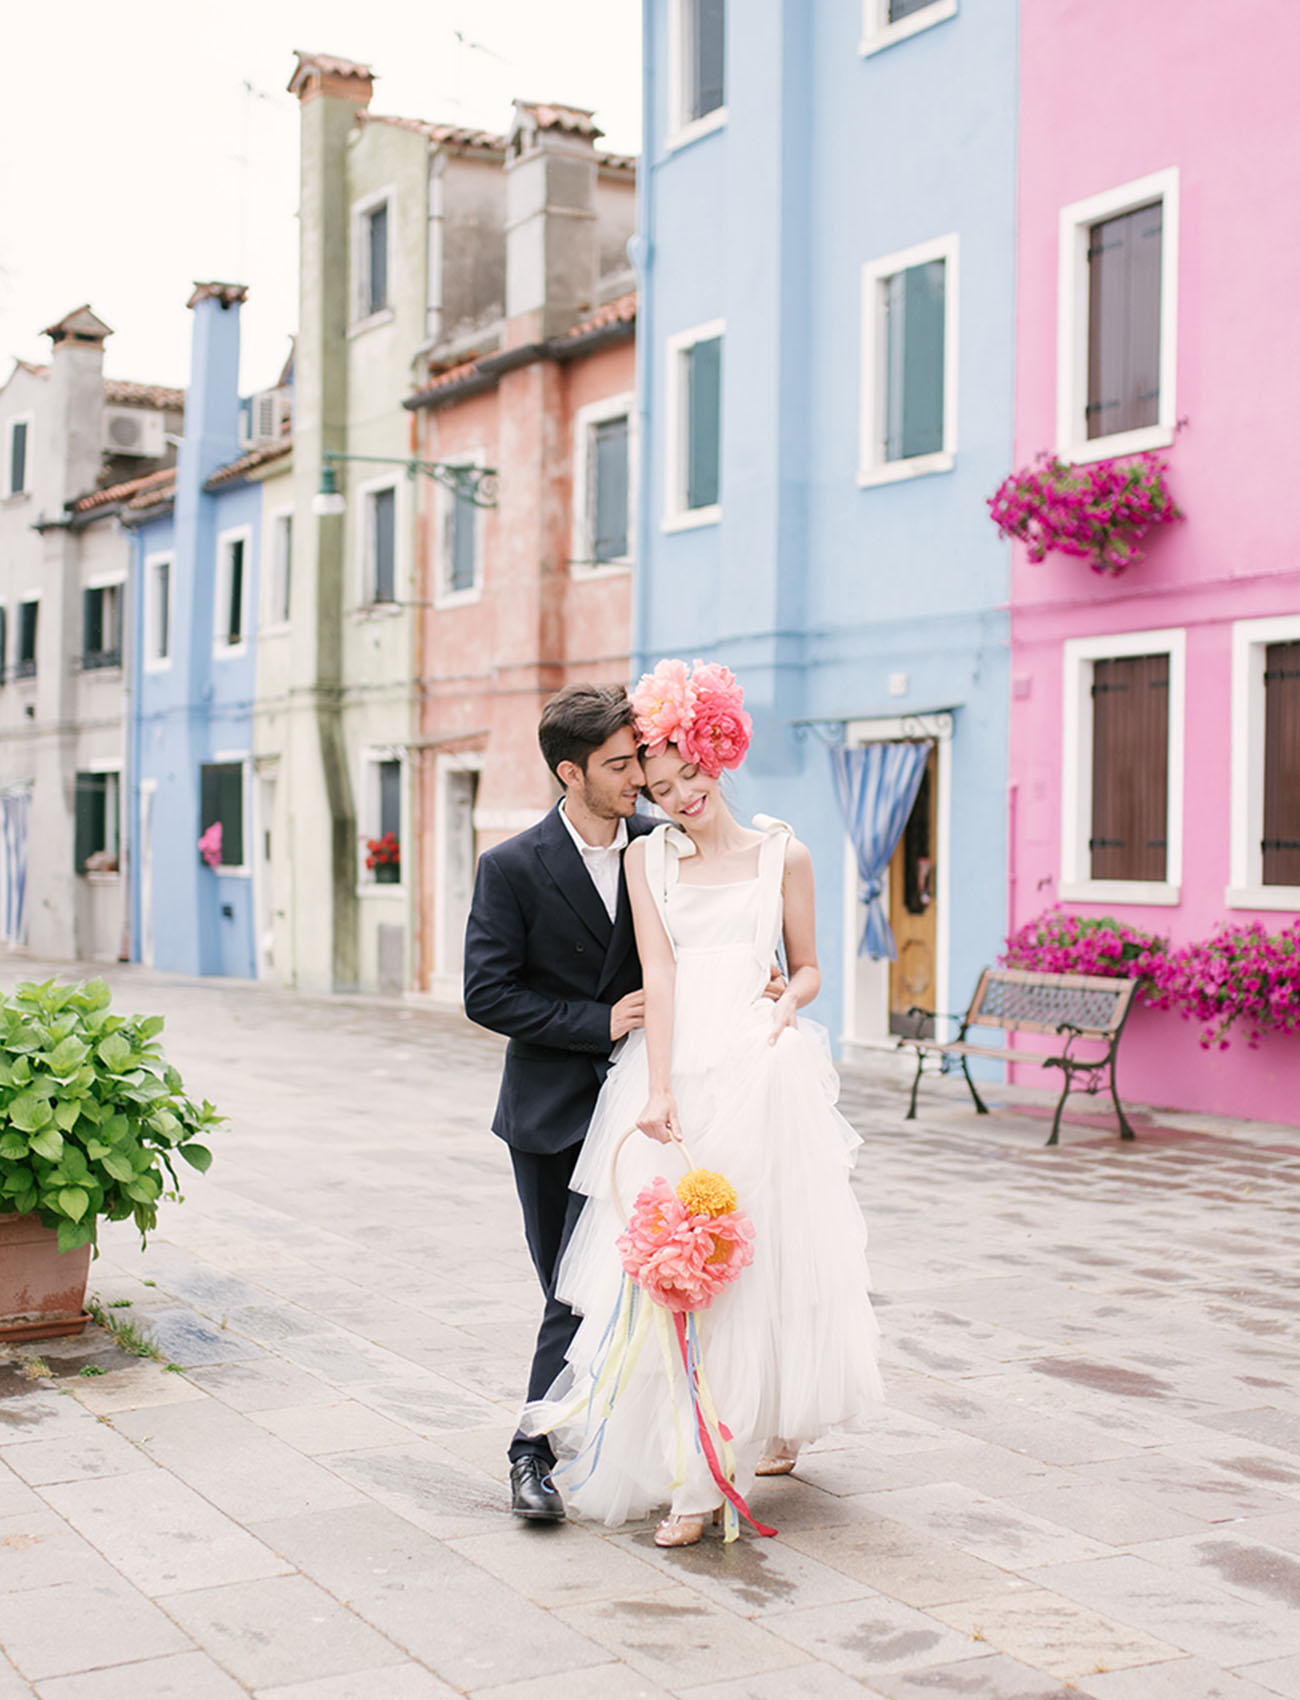 Romantic Italian Elopement